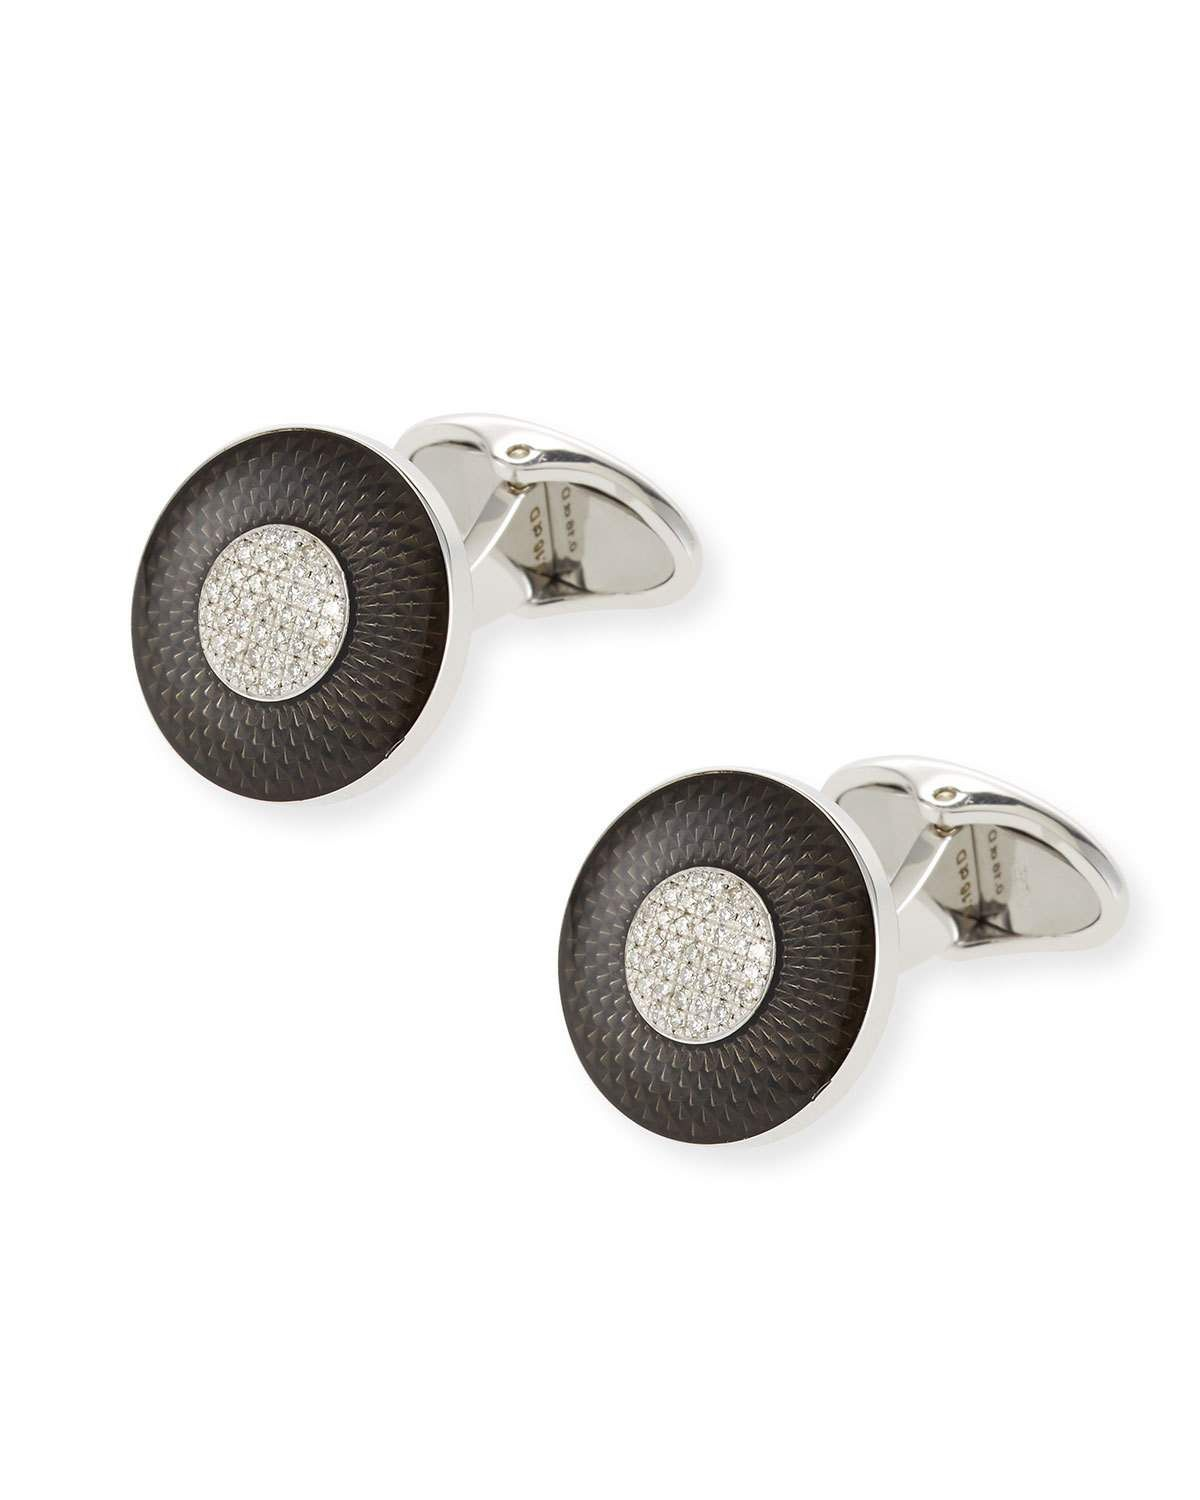 18f28d8f87b0 DUNHILL ENGINE-TURN SILVER/ENAMEL CUFF LINKS WITH DIAMONDS. #dunhill ...